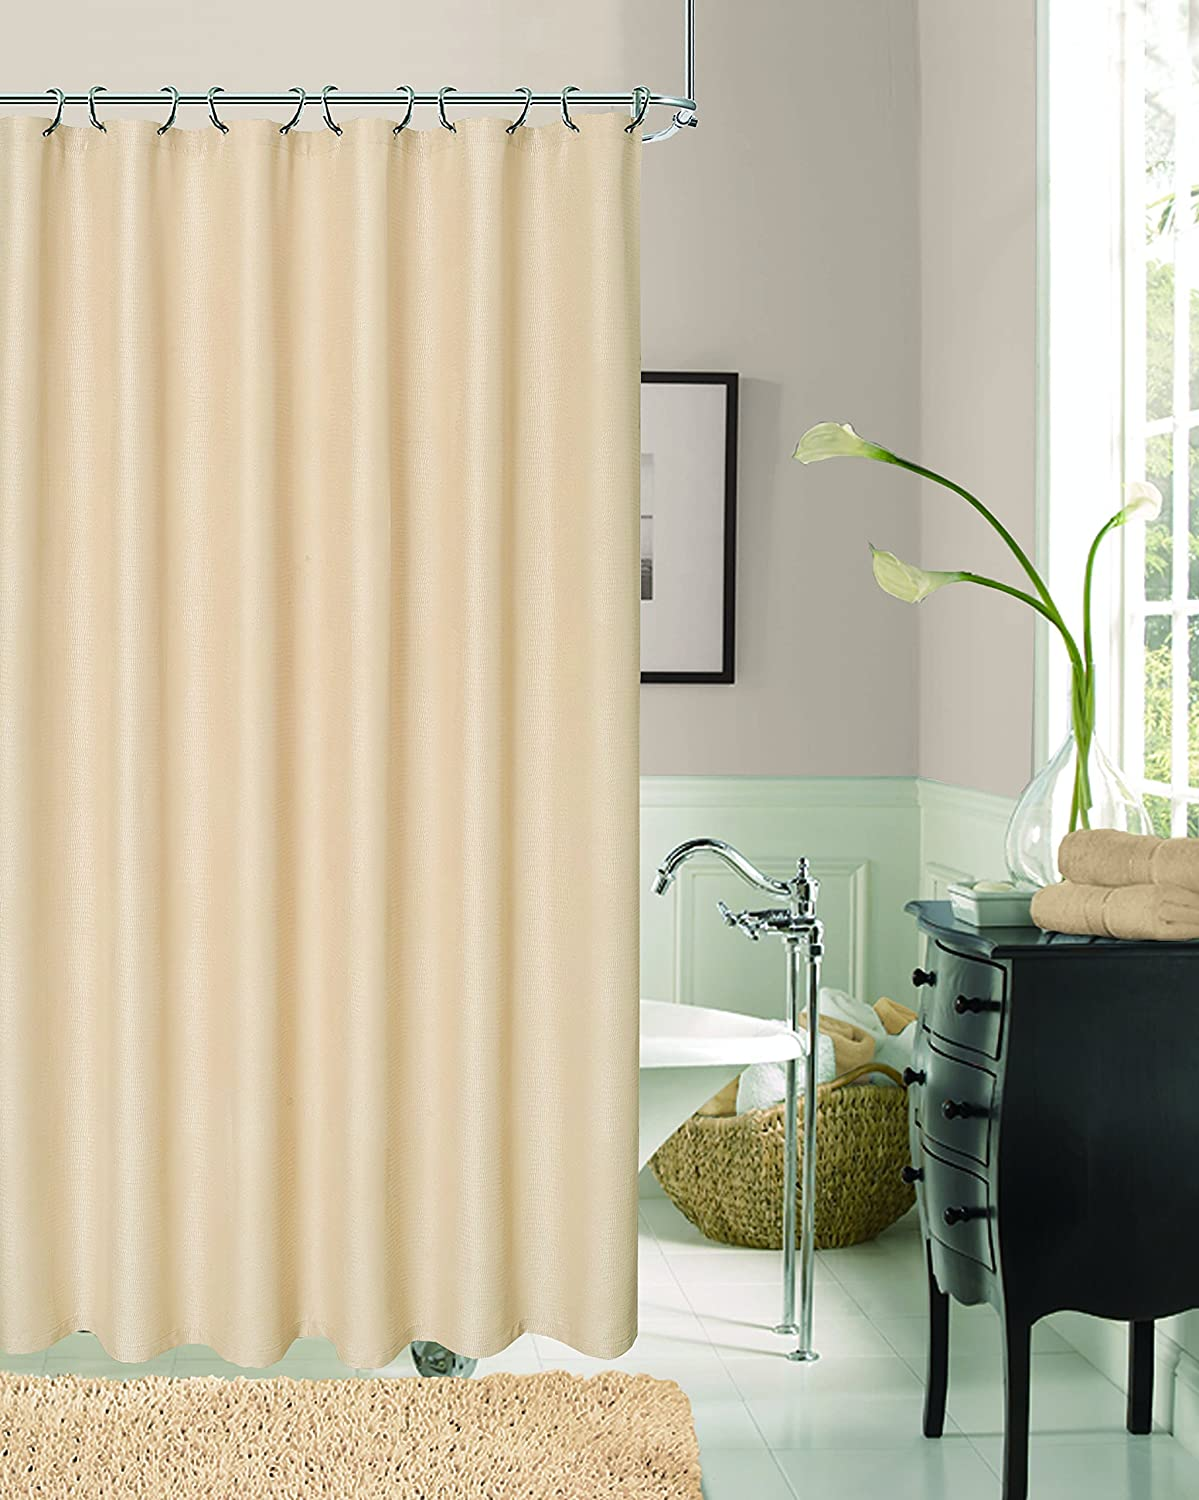 Bronze 70x72 Dainty Home CROCSBR Textured Shower Curtain